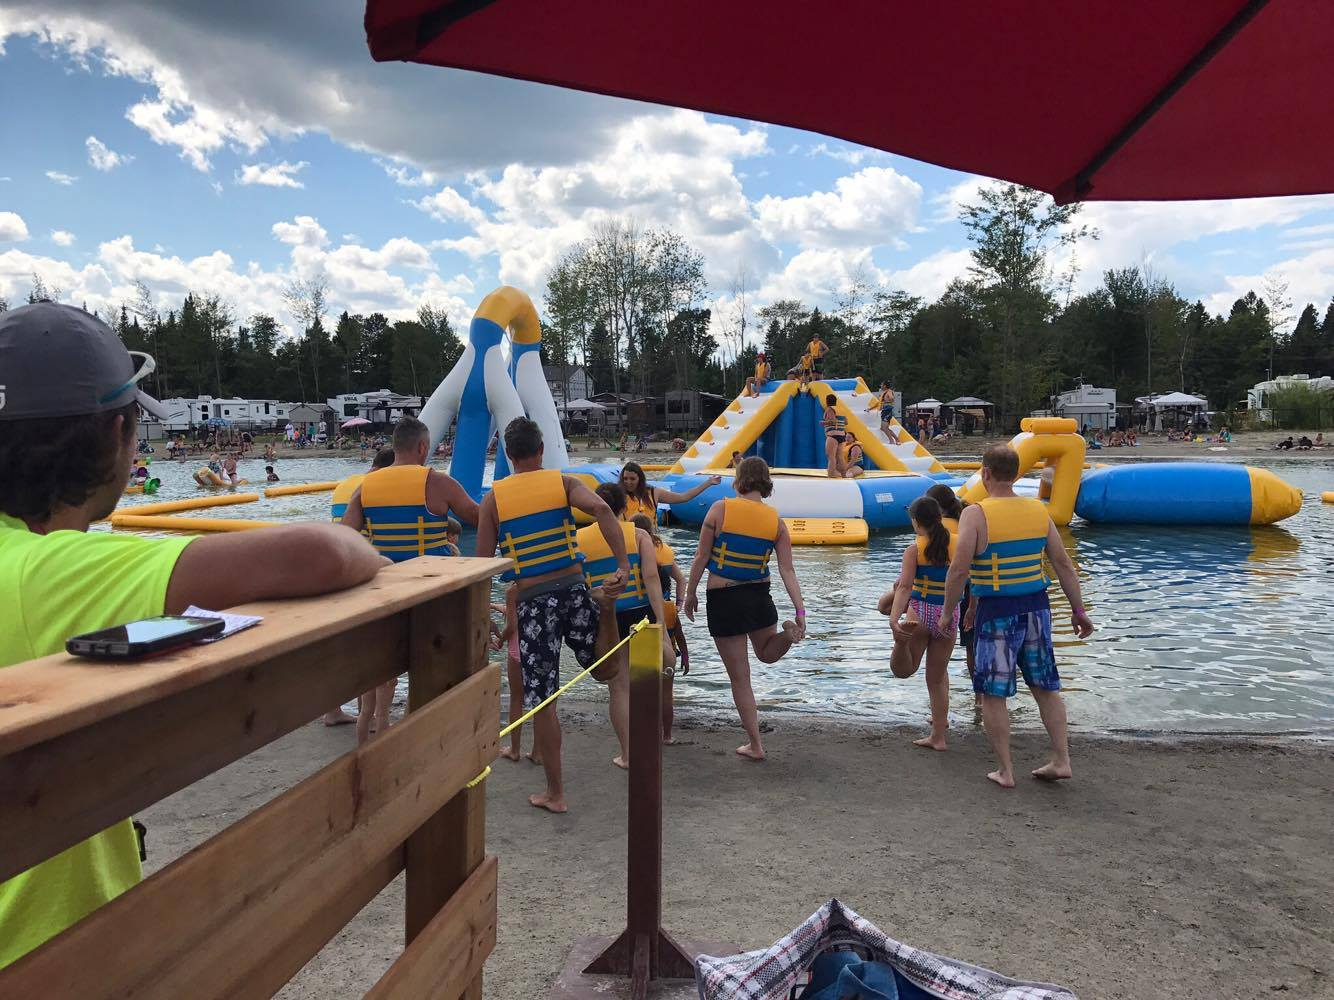 https://www.familizoo.com/ENG/wp-content/uploads/2019/01/beach-party-2017-complexe-atlantide-13.jpg